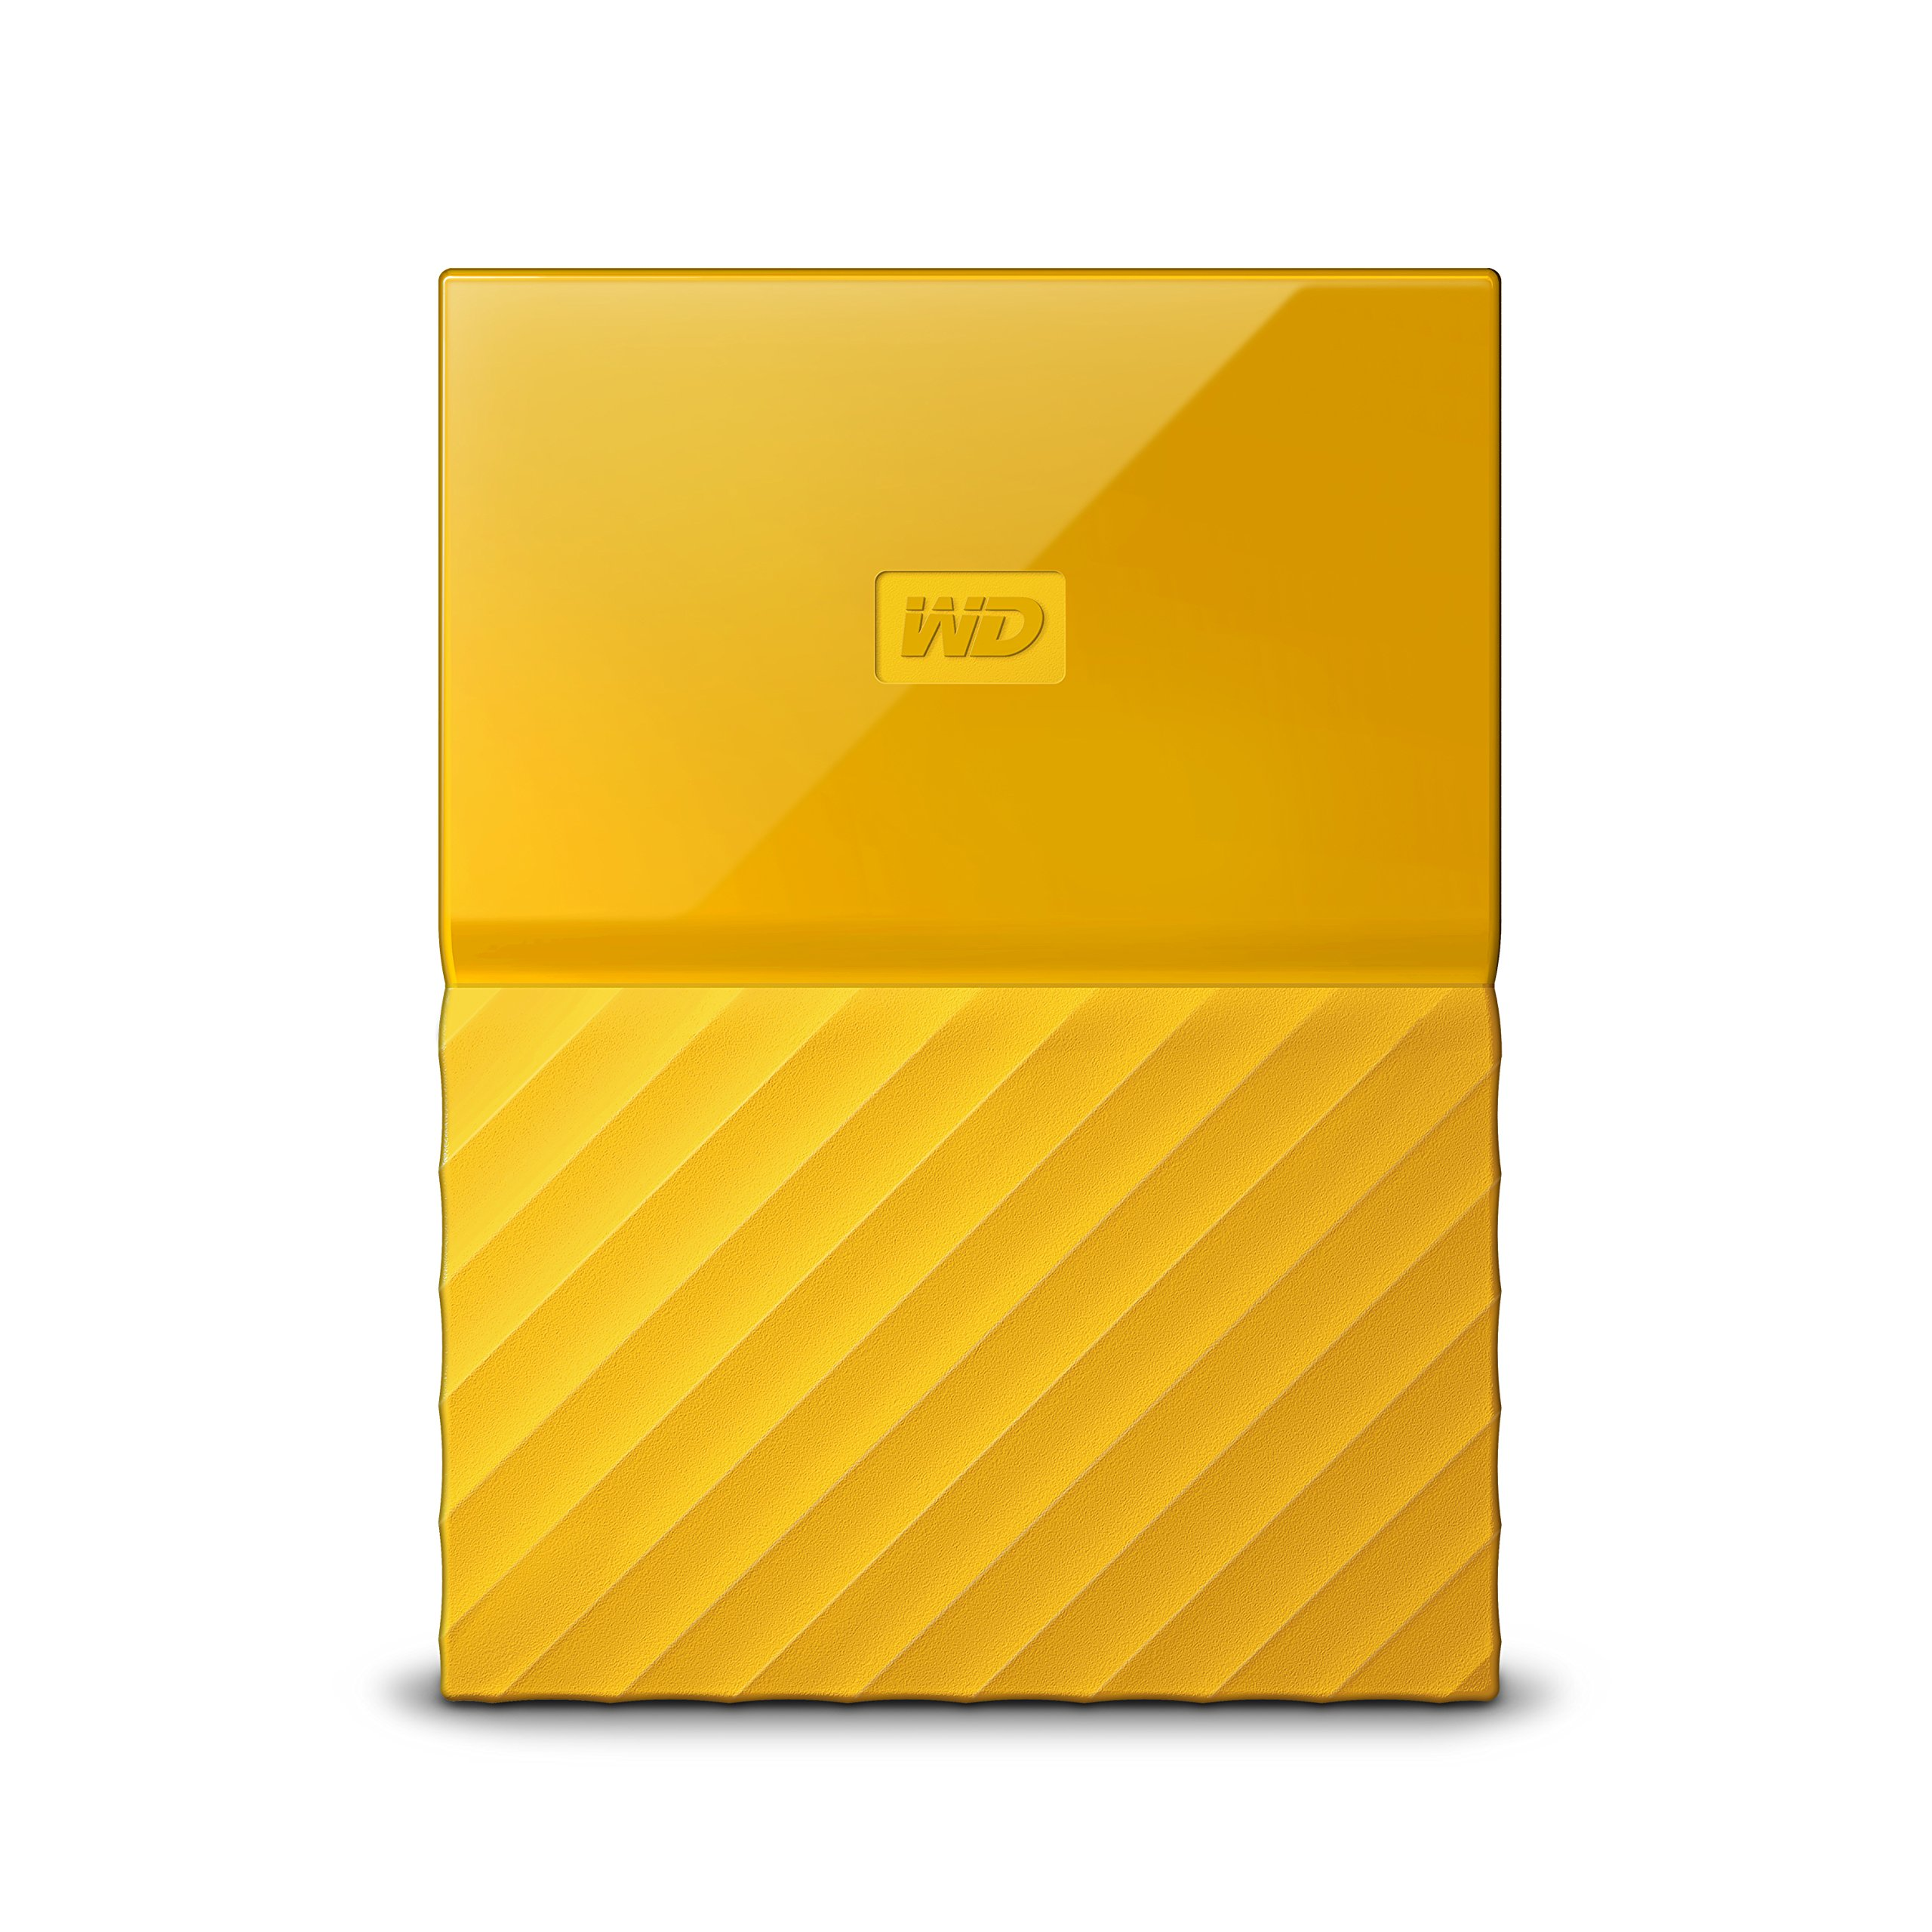 WD 2TB Yellow My Passport  Portable External Hard Drive - USB 3.0 - WDBYFT0020BYL-WESN